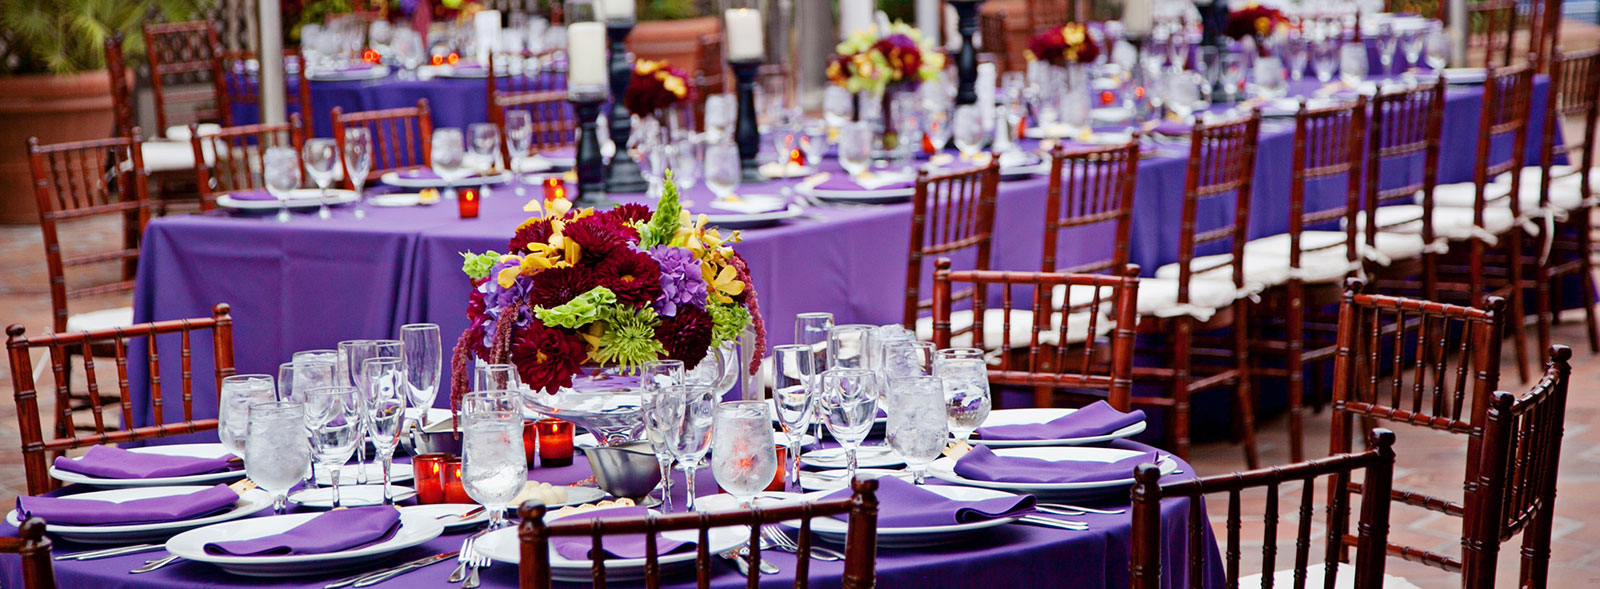 Catering at La Jolla Shores Hotel, California